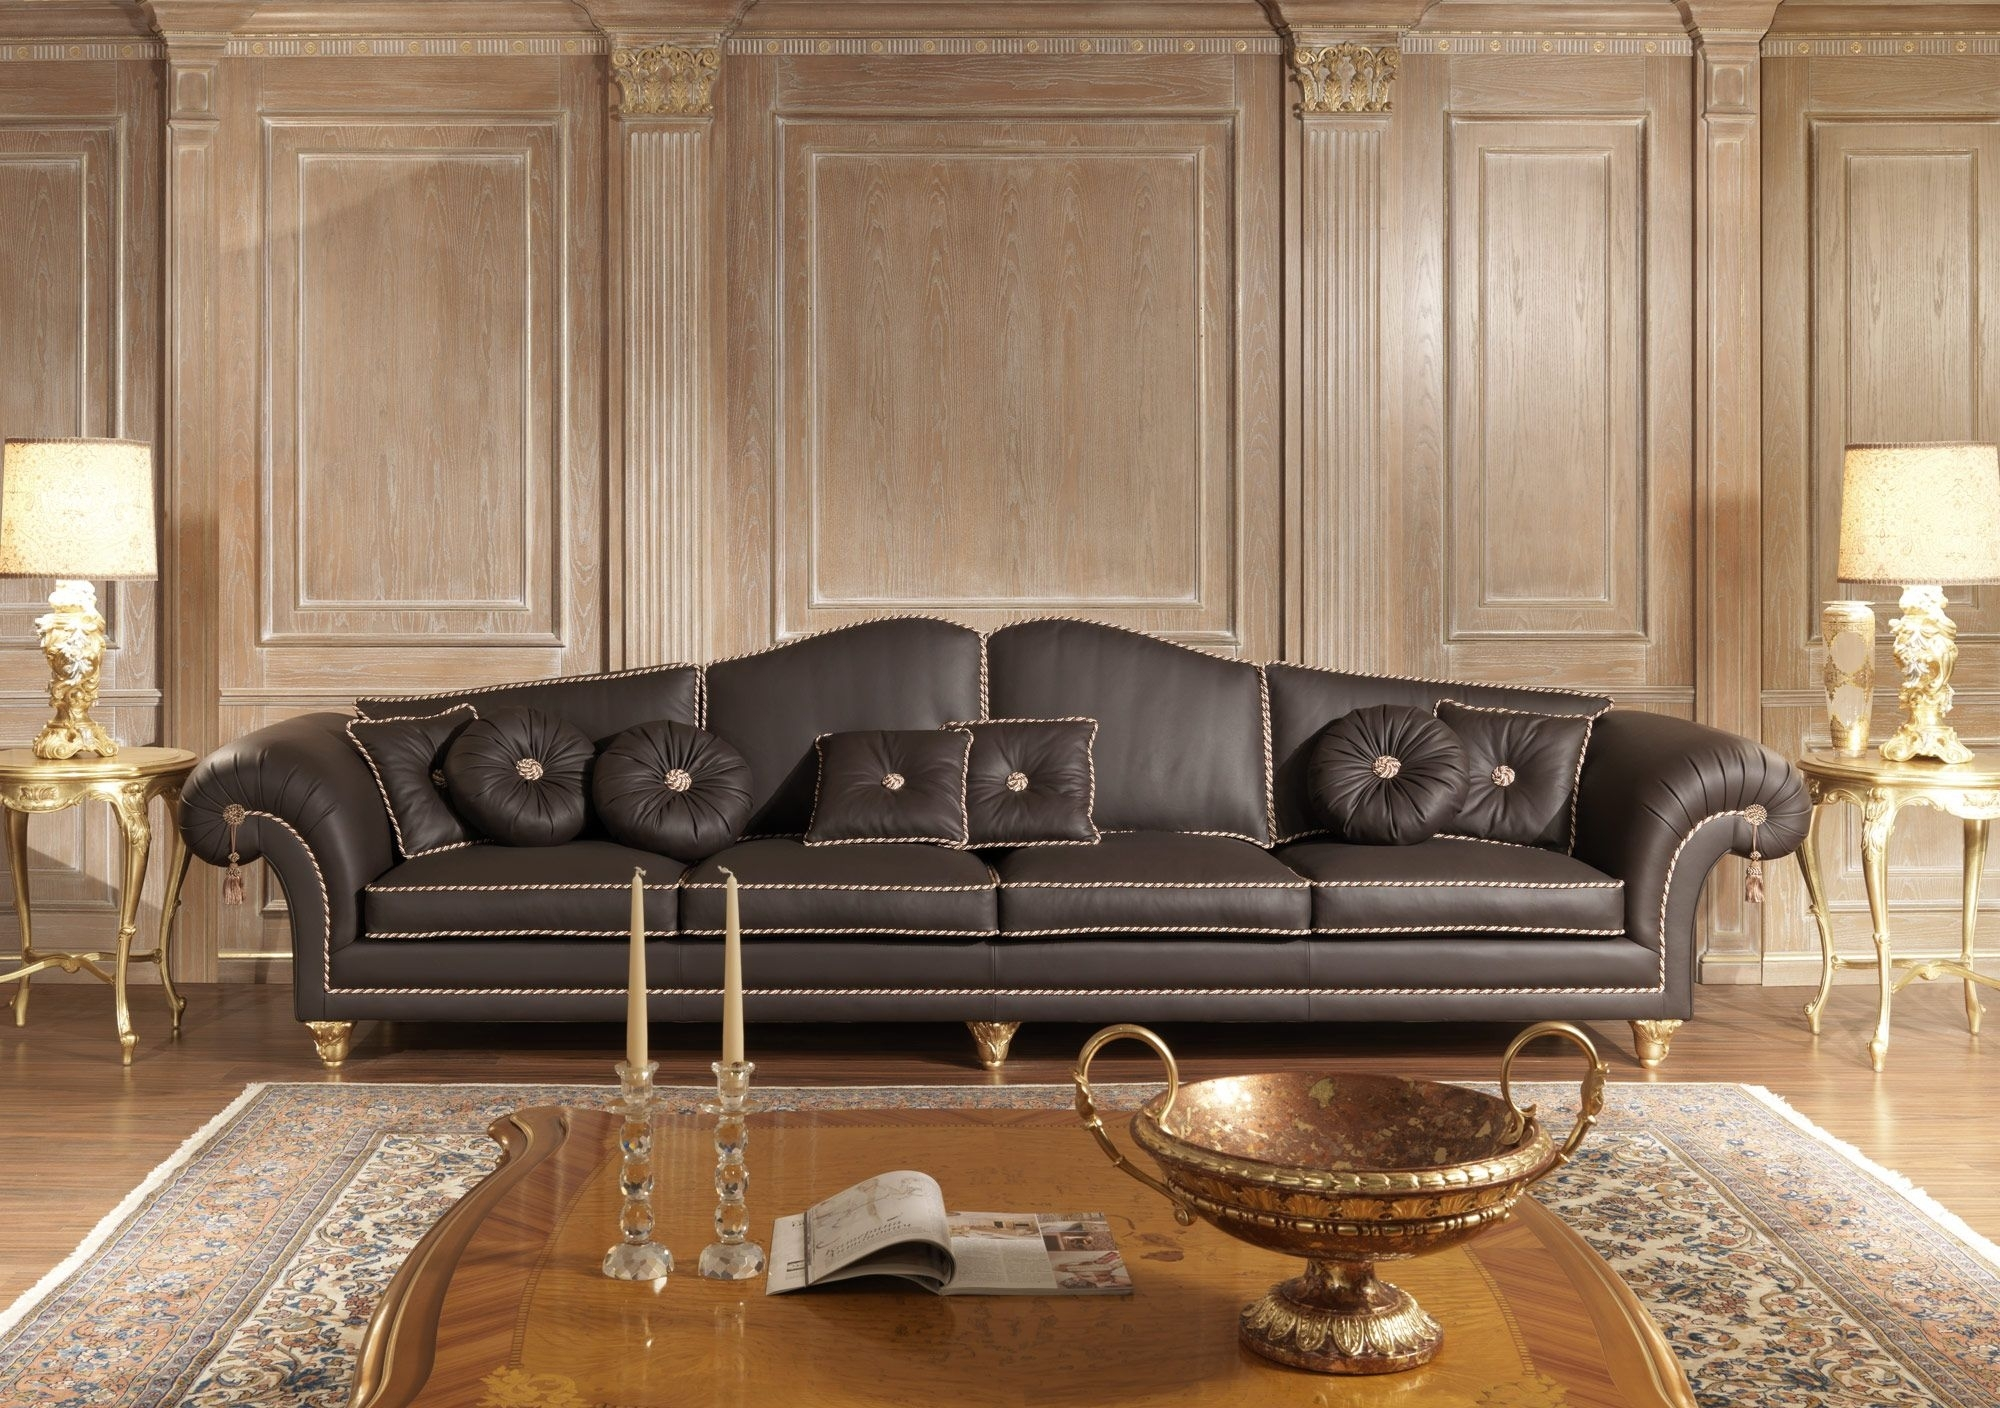 Classic Sofas: Important Dimensions | Sofa | Pinterest | Classic with regard to Classic Sofas (Image 5 of 10)